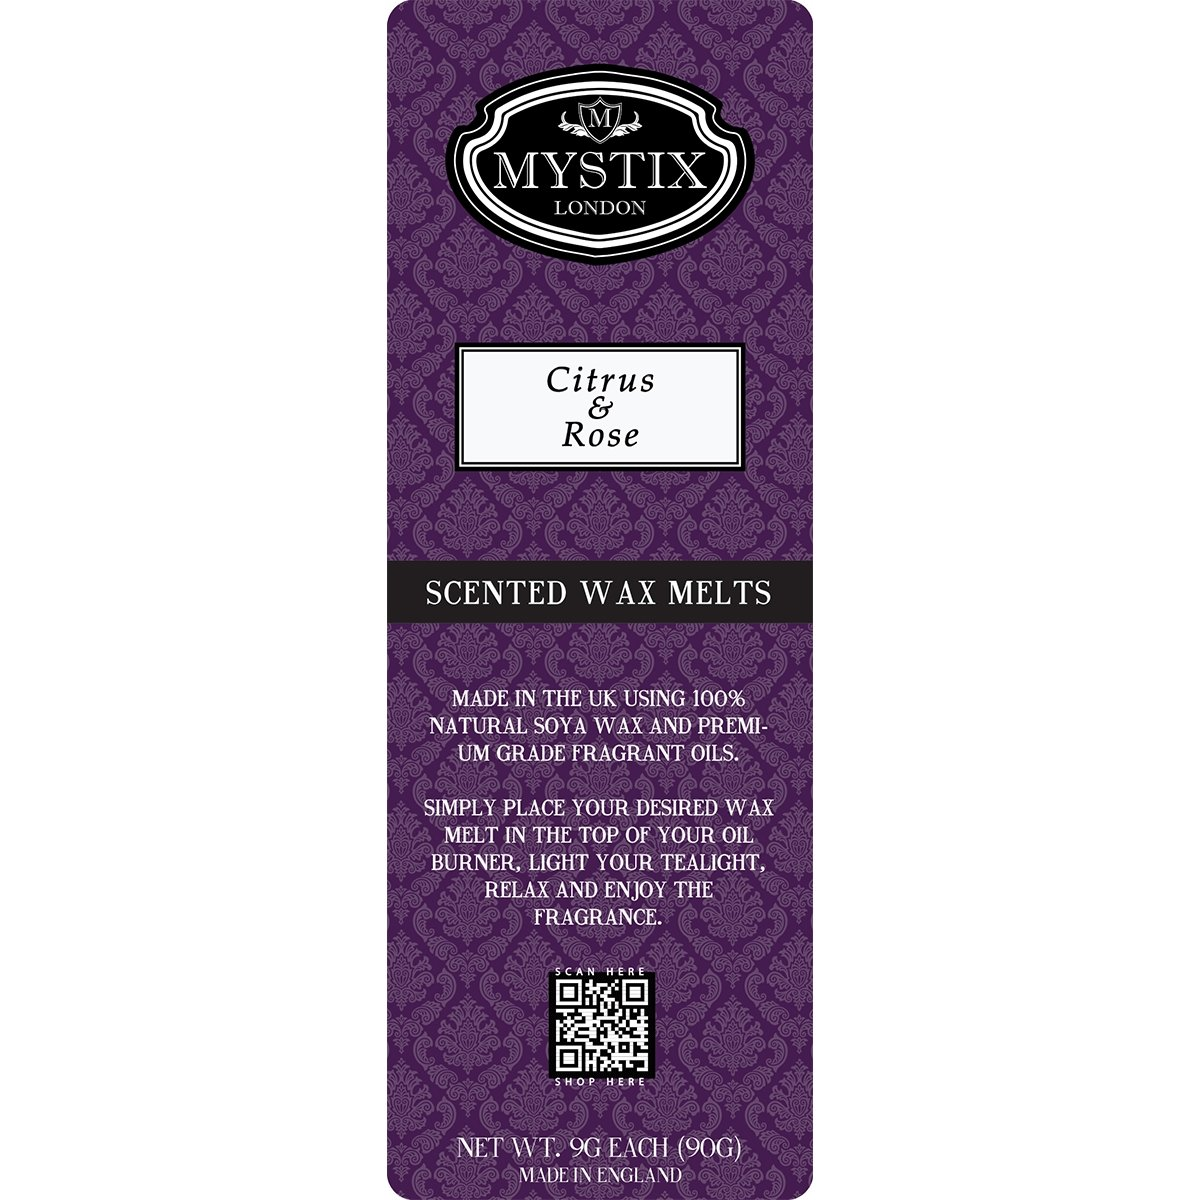 Citrus & Rose | Wax Melt Clamshell - Mystic Moments UK